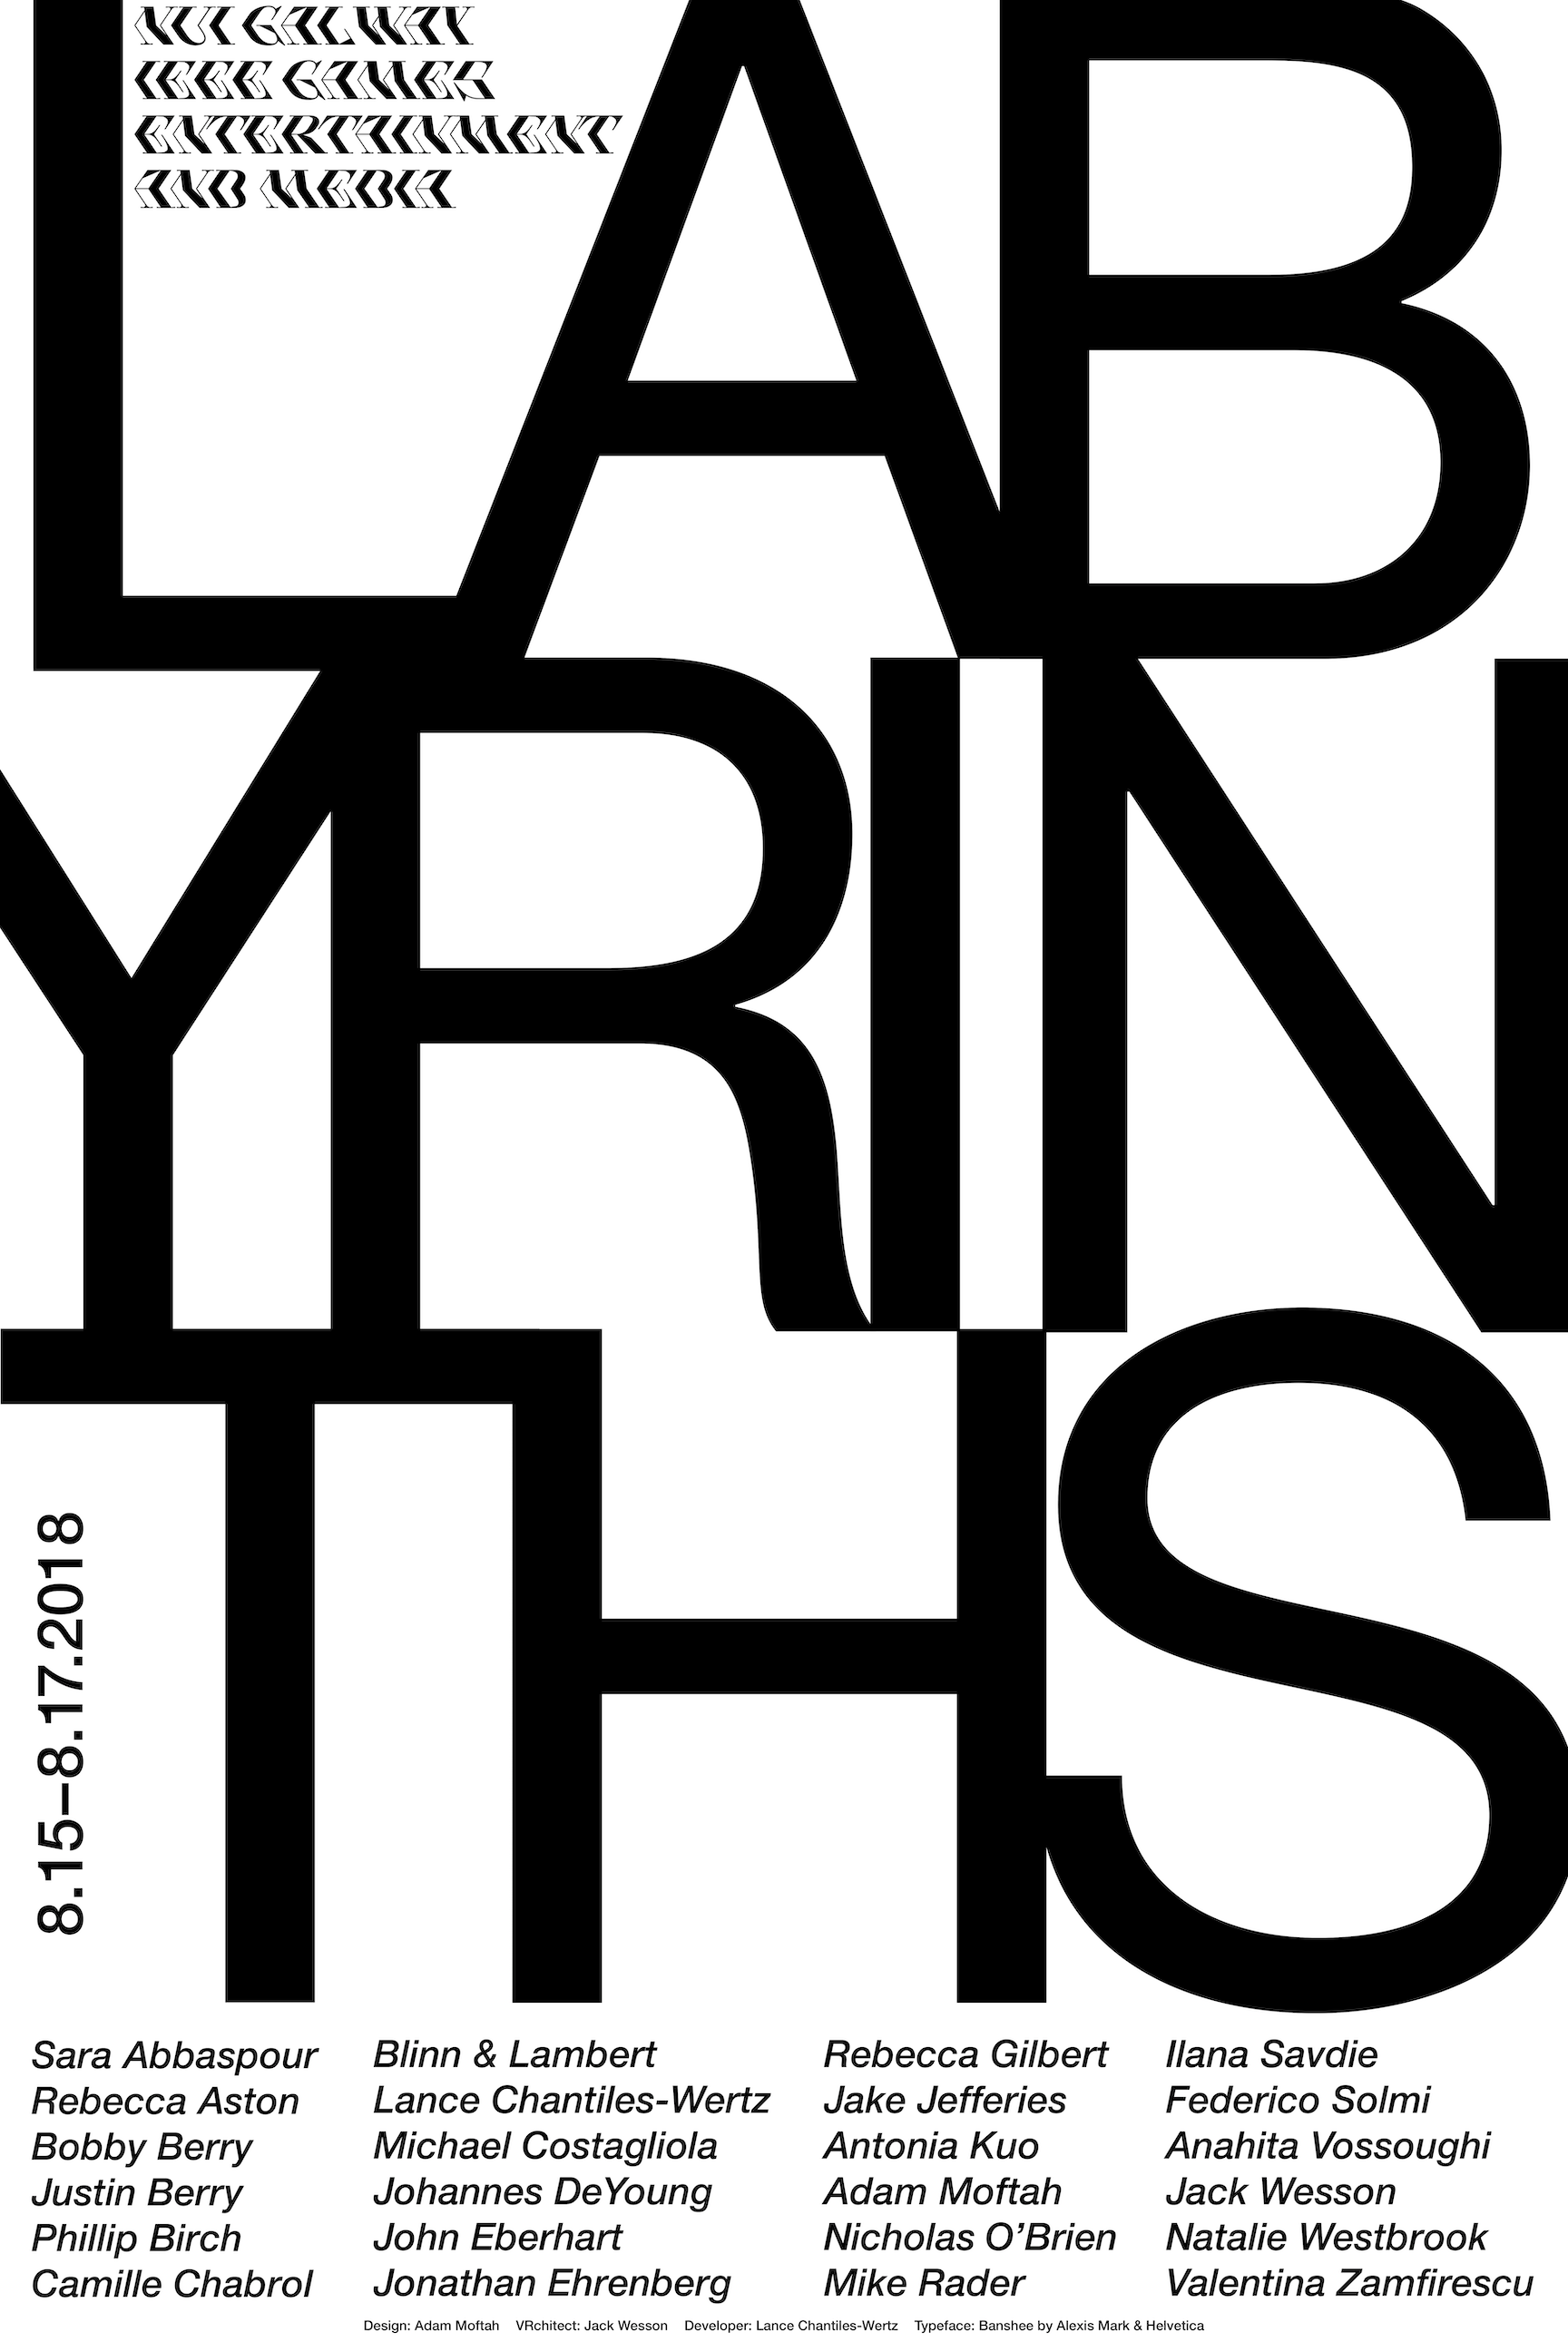 Labyrinths (2018) - Labyrinths is a Virtual Reality exhibition featuring works by twenty-four artists, dispersed throughout a procedurally generated gallery maze. Labyrinths have long symbolized psychic and spiritual journeys. Classically, the labyrinth is a space where serendipity, danger, and opportunity lurk around every corner. Archetypal narrative structures unfold in recursive rhythms, and the spiraling edifice of the maze is site for both self-reflection and projection. The labyrinth's architecture is resonant of the human inner ear, a biological driver of balance and proprioception. The Labyrinths exhibition platform draws upon existing research in VR navigation and proprioceptive VR hardware interfaces through its implementation of a controller-less embodied navigation model that enables intuitive and fully embodied exploration. Individual artists works are randomly spawned in gallery plazas throughout the maze and participants' experiences unfold upon surprising encounters with artists' works through the randomizing algorithm. The randomizing agent presents the virtual space as a meta-cognitive site where poetic association happens through chance encounters.Labyrinths features the works of artists Sara Abbaspour, Rebecca Aston, Bobby Berry, Justin Berry, Philip Birch, Blinn & Lambert, Lance Chantiles-Wertz, Michael Costagliola, Johannes DeYoung, John Eberhart, Jonathan Ehrenberg, Rebecca Gilbert, Jake Jefferies, Antonia Kuo, Alex Lee, Adam Moftah, Nicholas O'Brien, Mike Rader, Ilana Savdie, Federico Solmi, Anahita Vossoughi, Jack Wesson, Natalie Westbrook, and Valentina Zamfirescu. The platform utilizes a mode of embodied navigation developed at Yale University's Center for Collaborative Arts and Media, presented at the IEEE GEM 2018 conference in Galway, Ireland. The exhibition platform itself presents a unique curatorial model, enabling participants a structural framework to explore themes self and embodiment, representation and materiality, time and spa